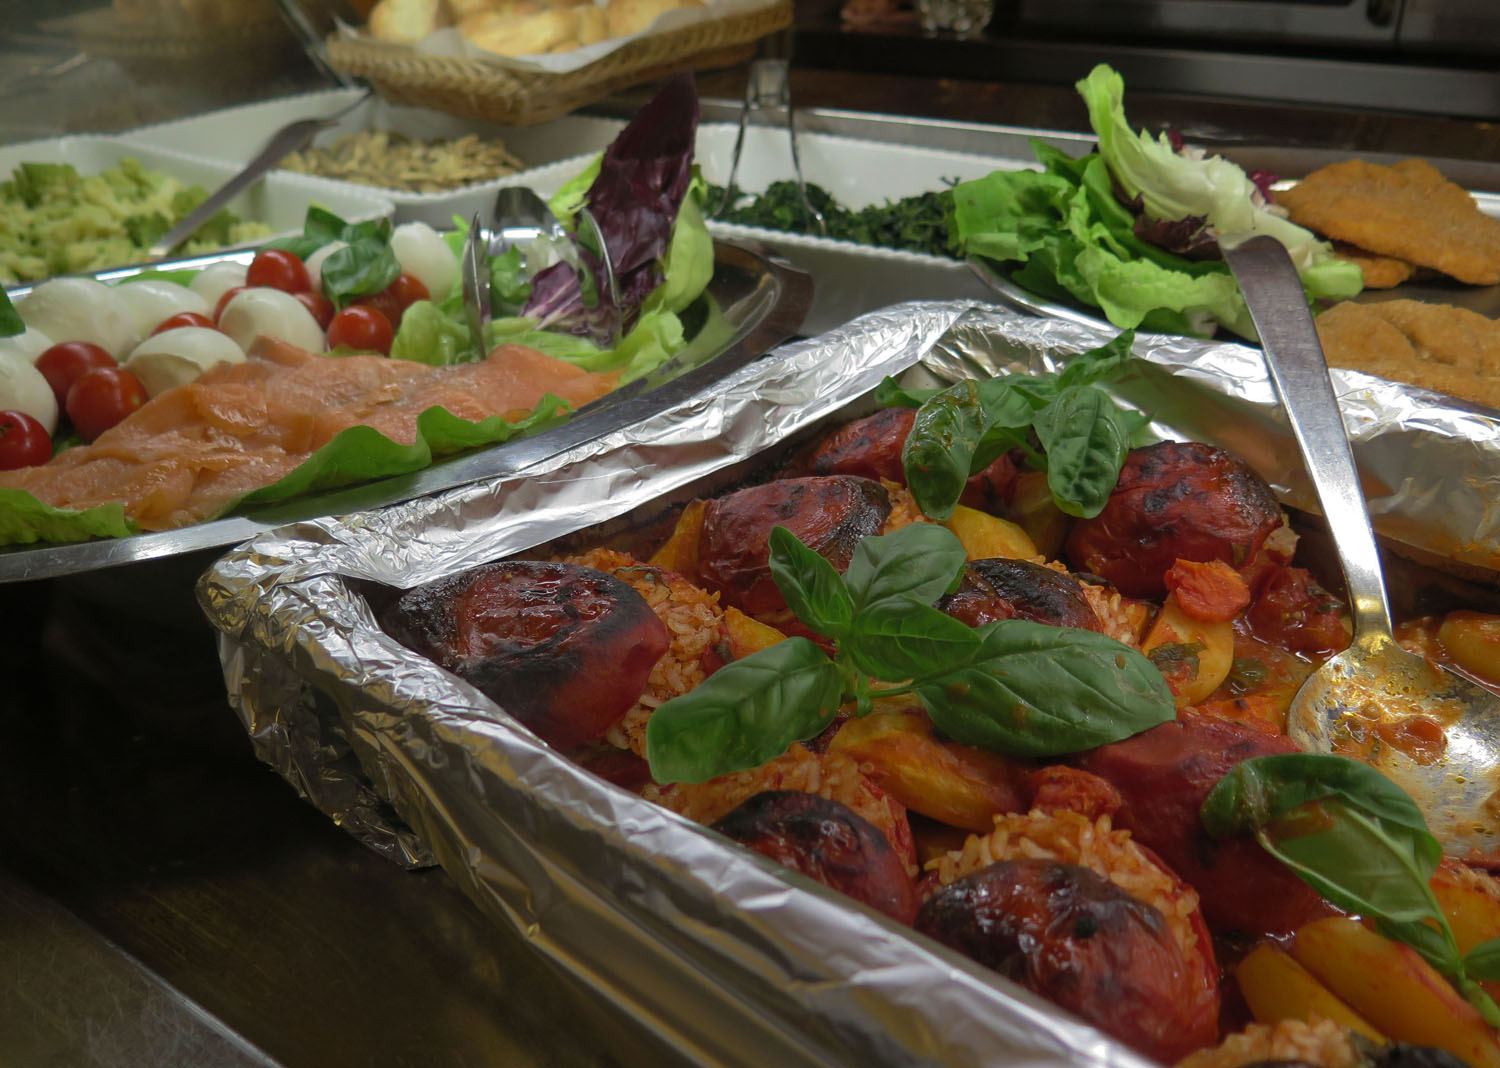 Italy-Rome-Food-And-Drink-Stuffed-Tomatoes